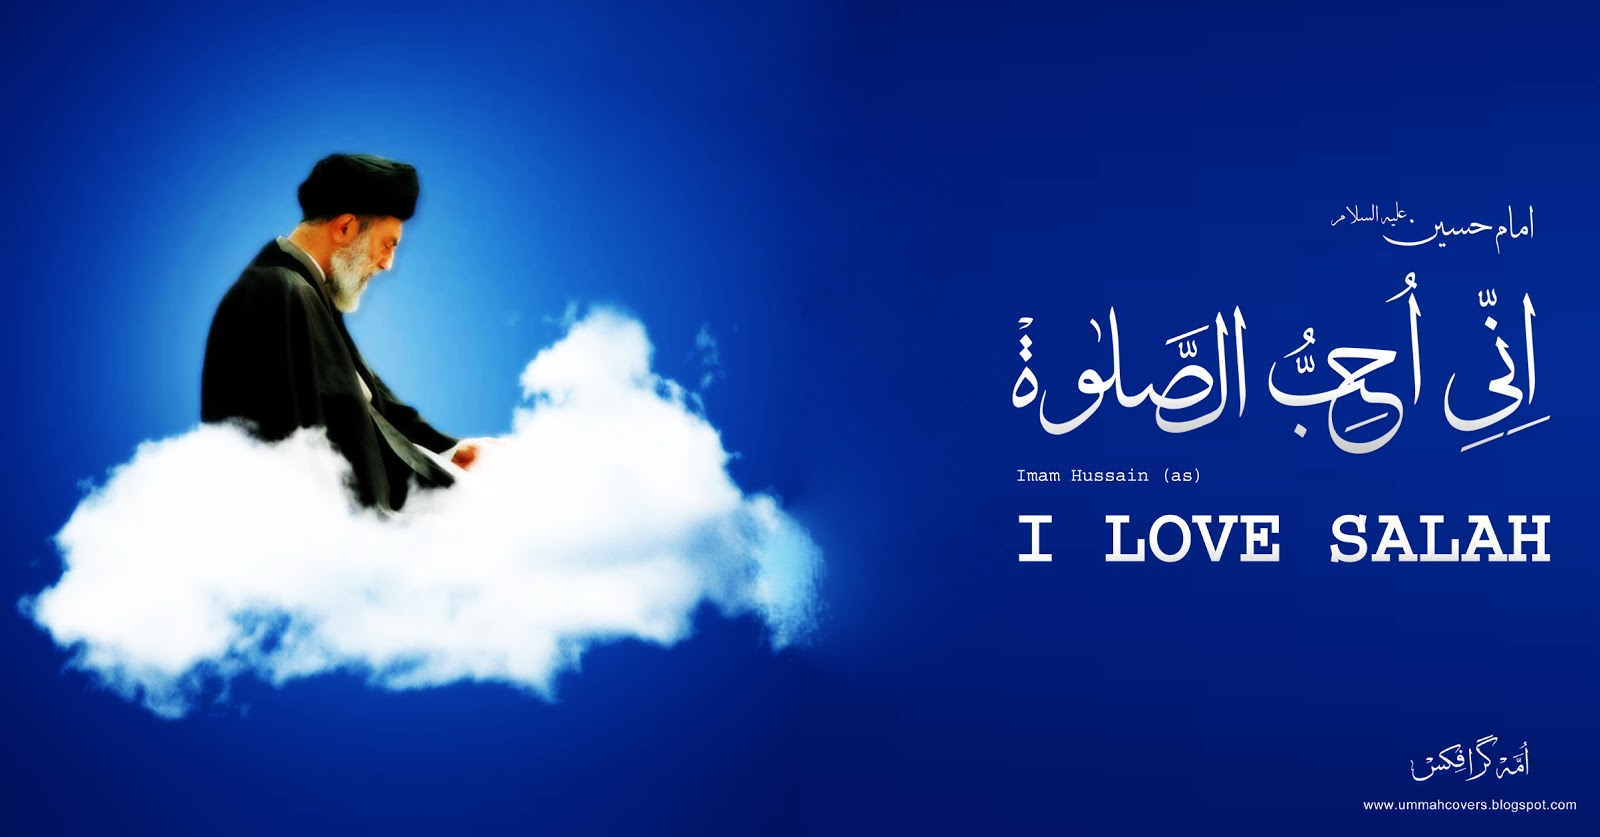 I Love You Wallpaper For Fb : UMMAH Graphics: I Love Salah ( Imam Hussain a.s ) Wallpaper + FB cover